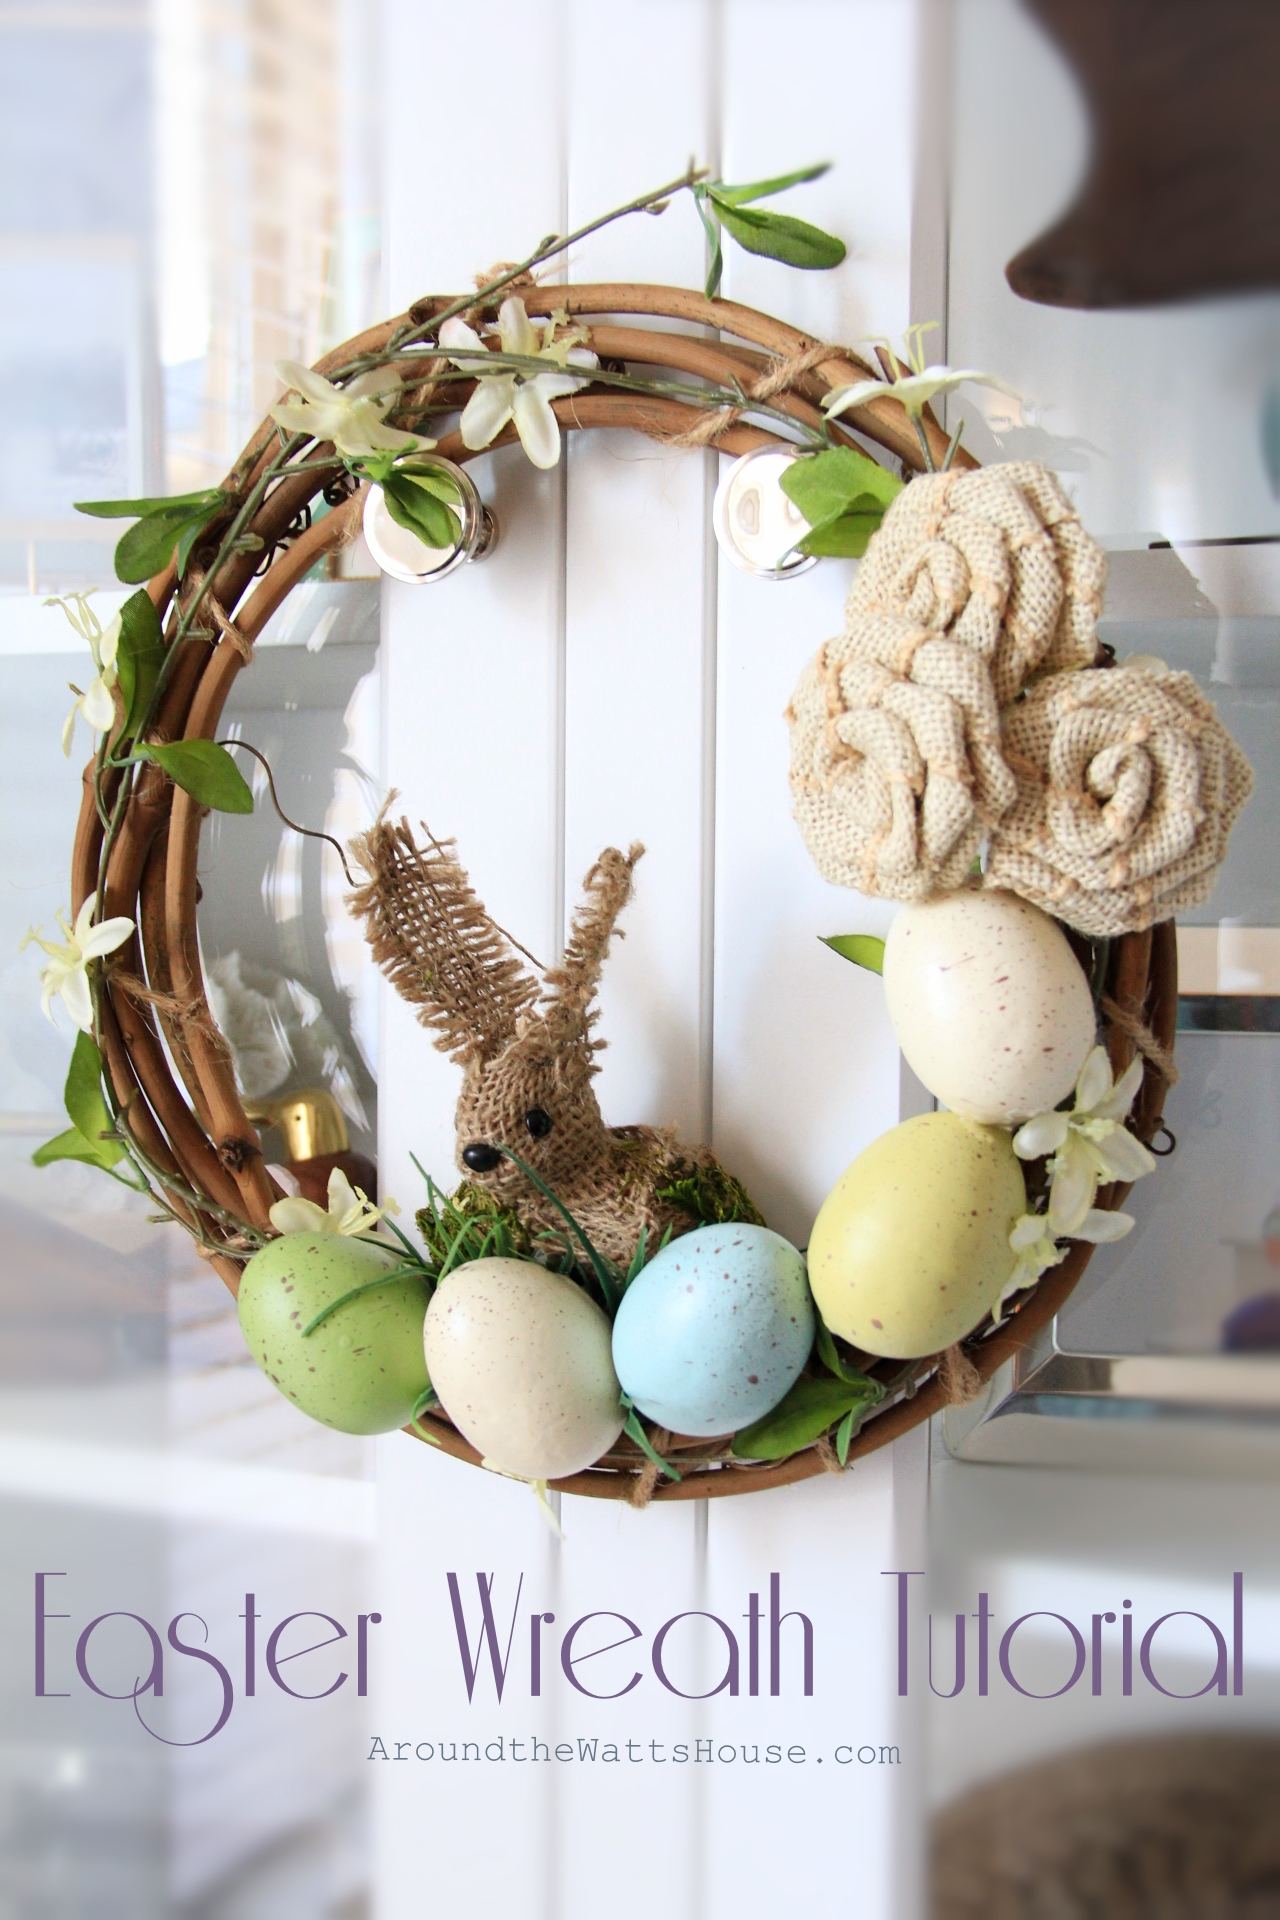 Easter Wreath Tutorial